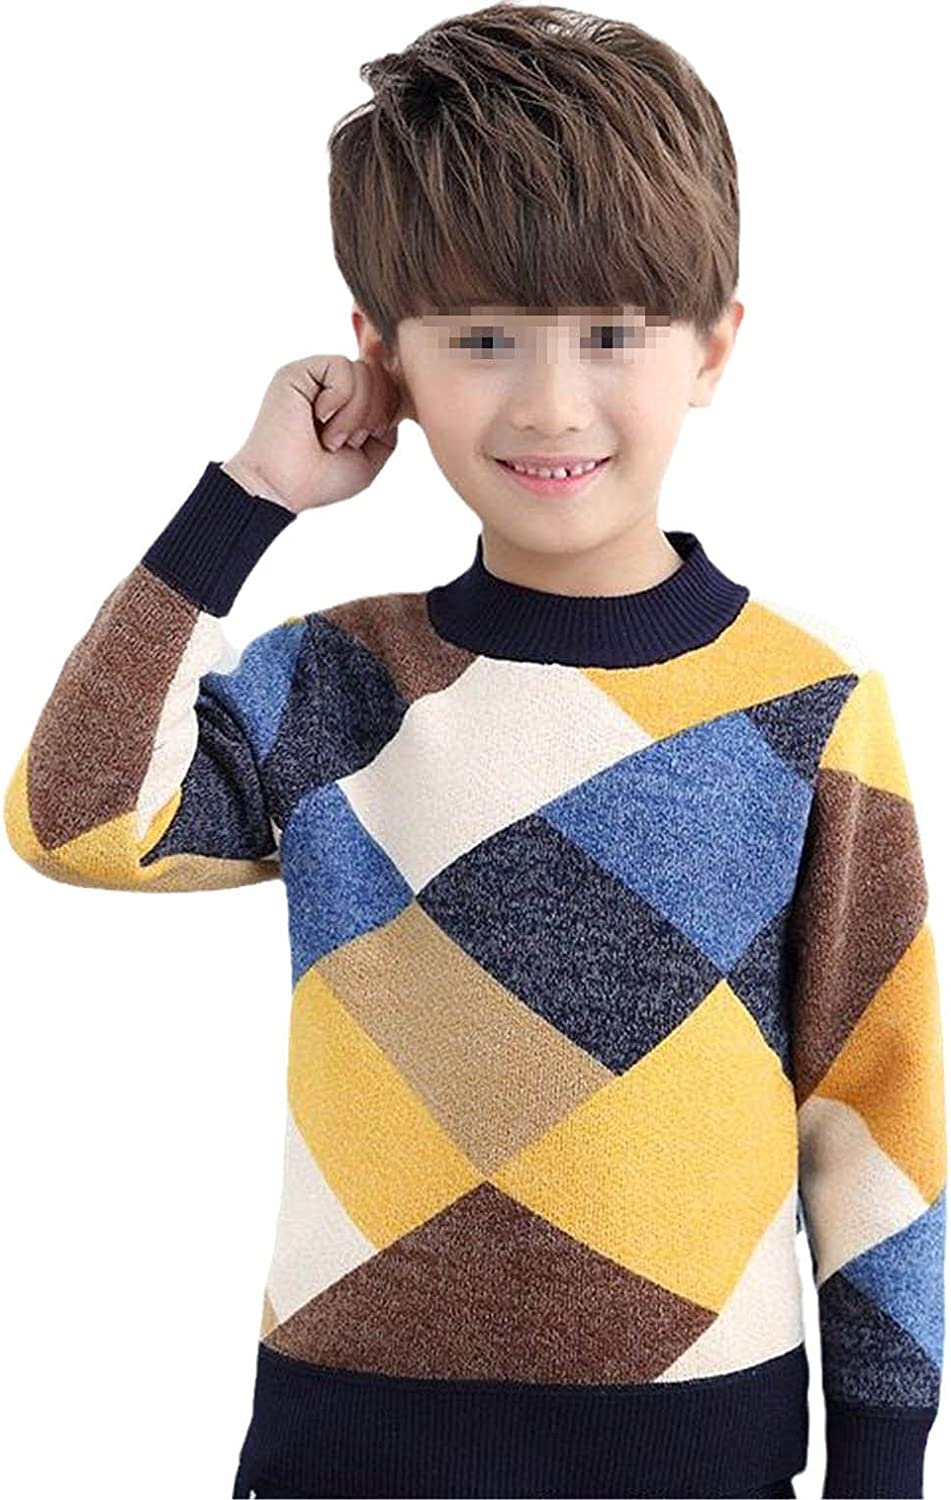 Boys Sweaters Baby Stripe Plaid Pullover Knit Kids Clothes Autumn Winter Tops Children Sweaters Boy Clothing O-Neck